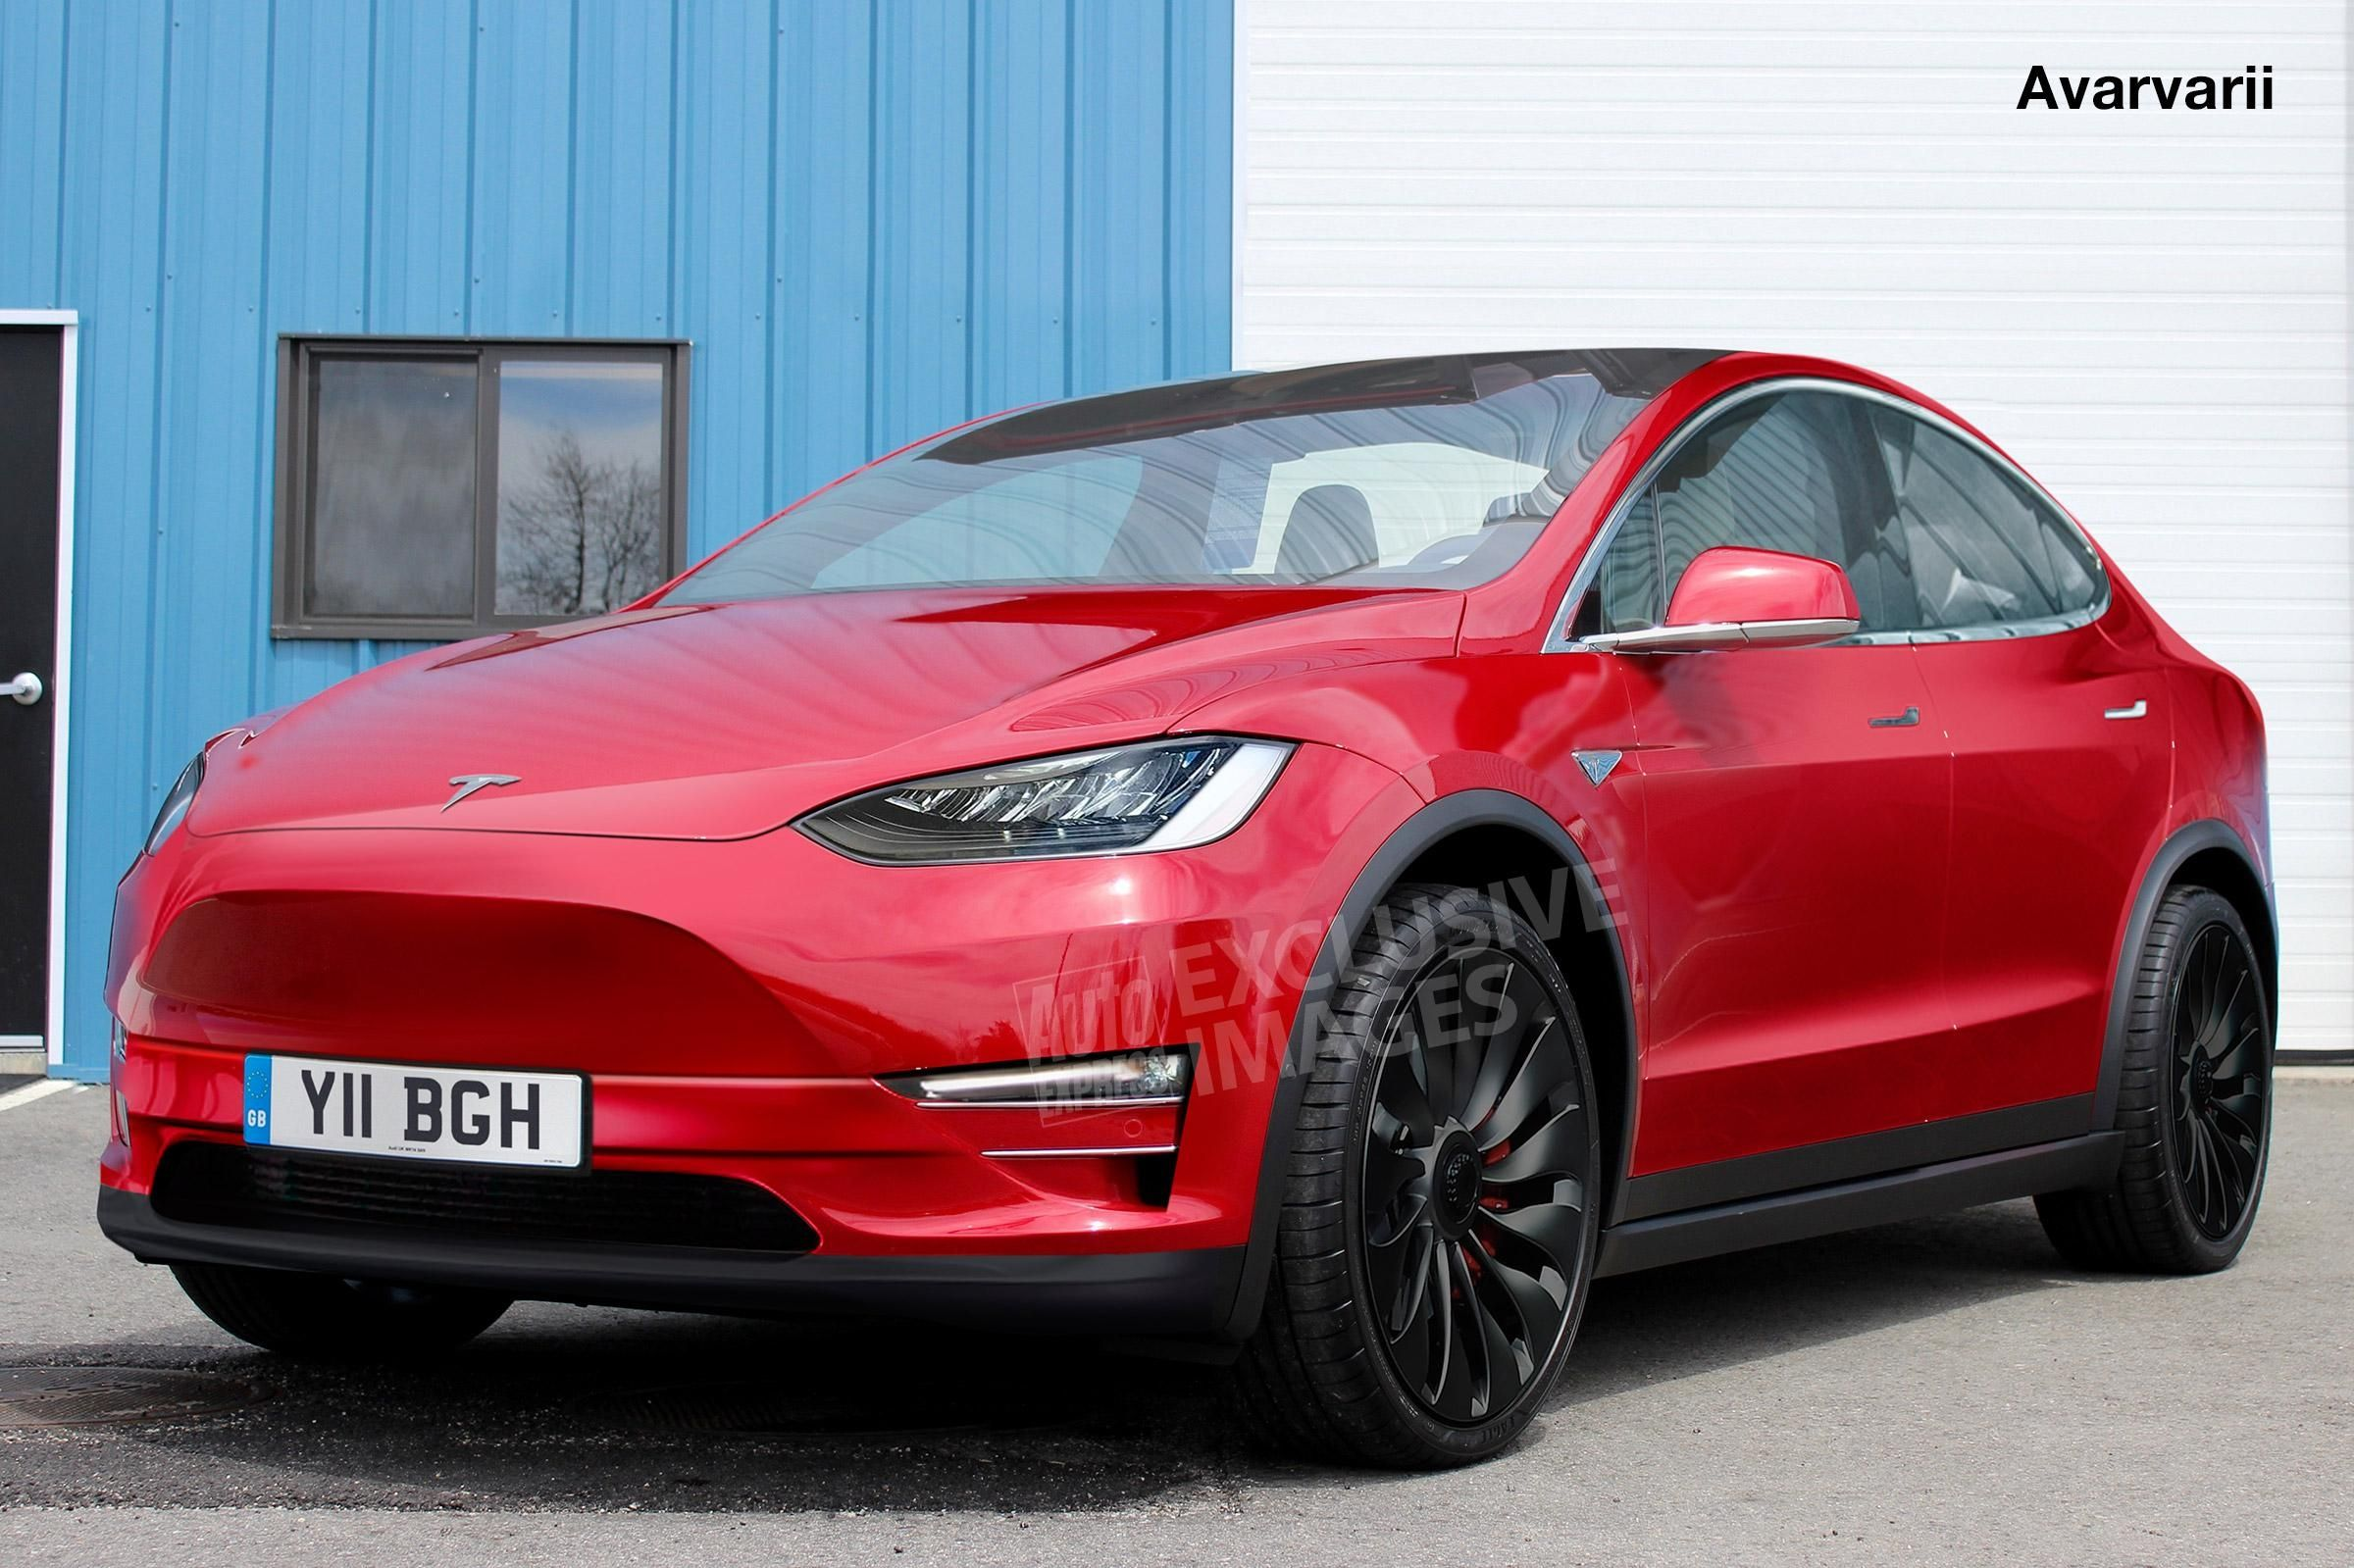 New Tesla Model Y Suv To Arrive In 2019 Auto Express Intended